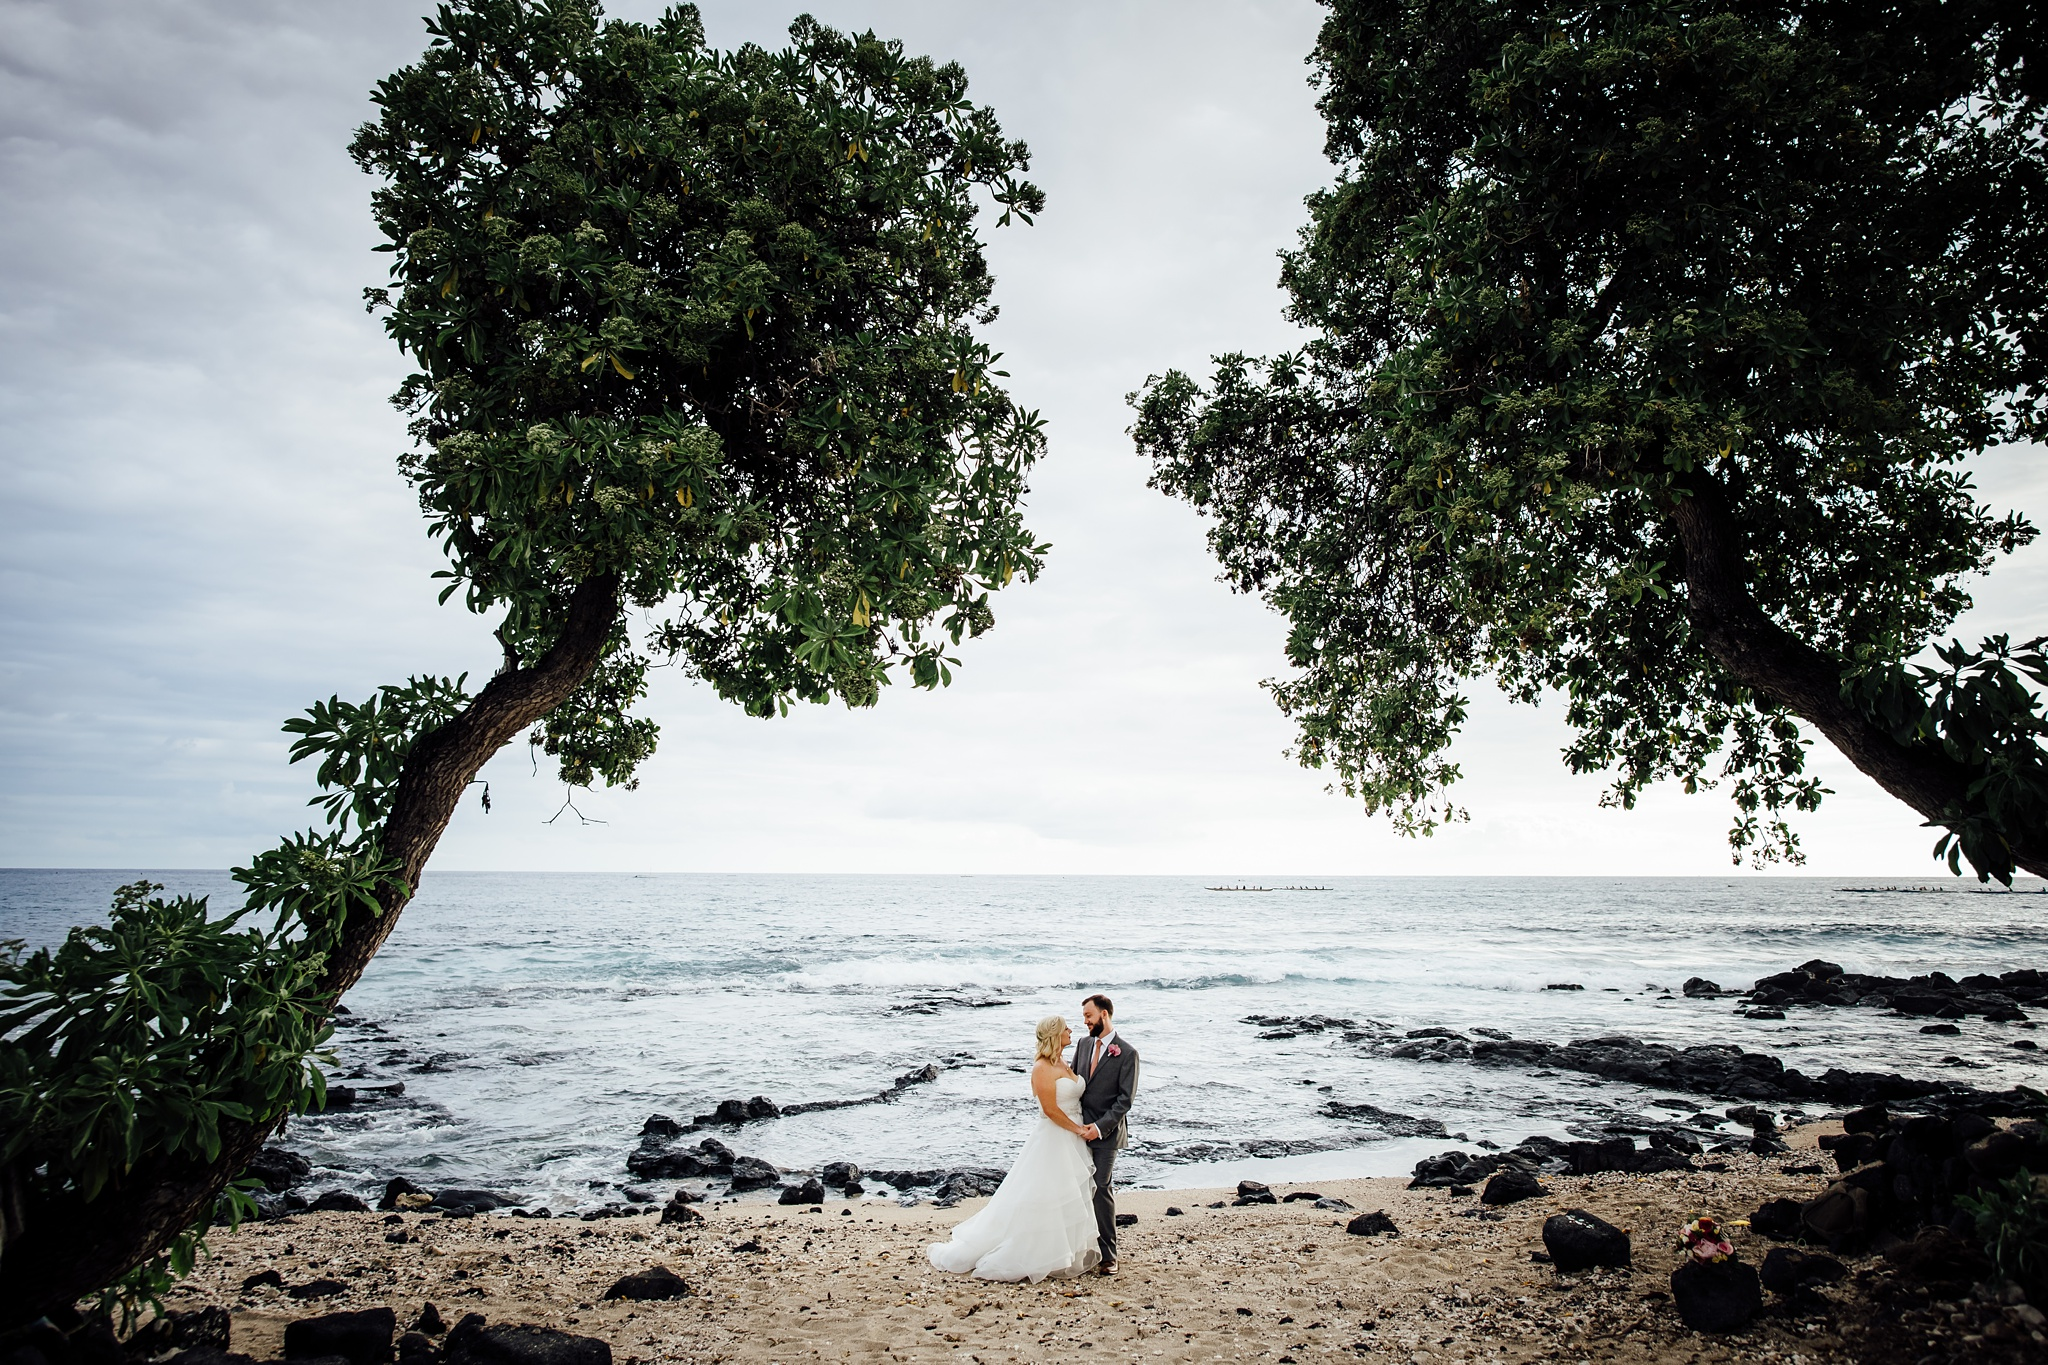 Daylight Mind Wedding Location in Kona